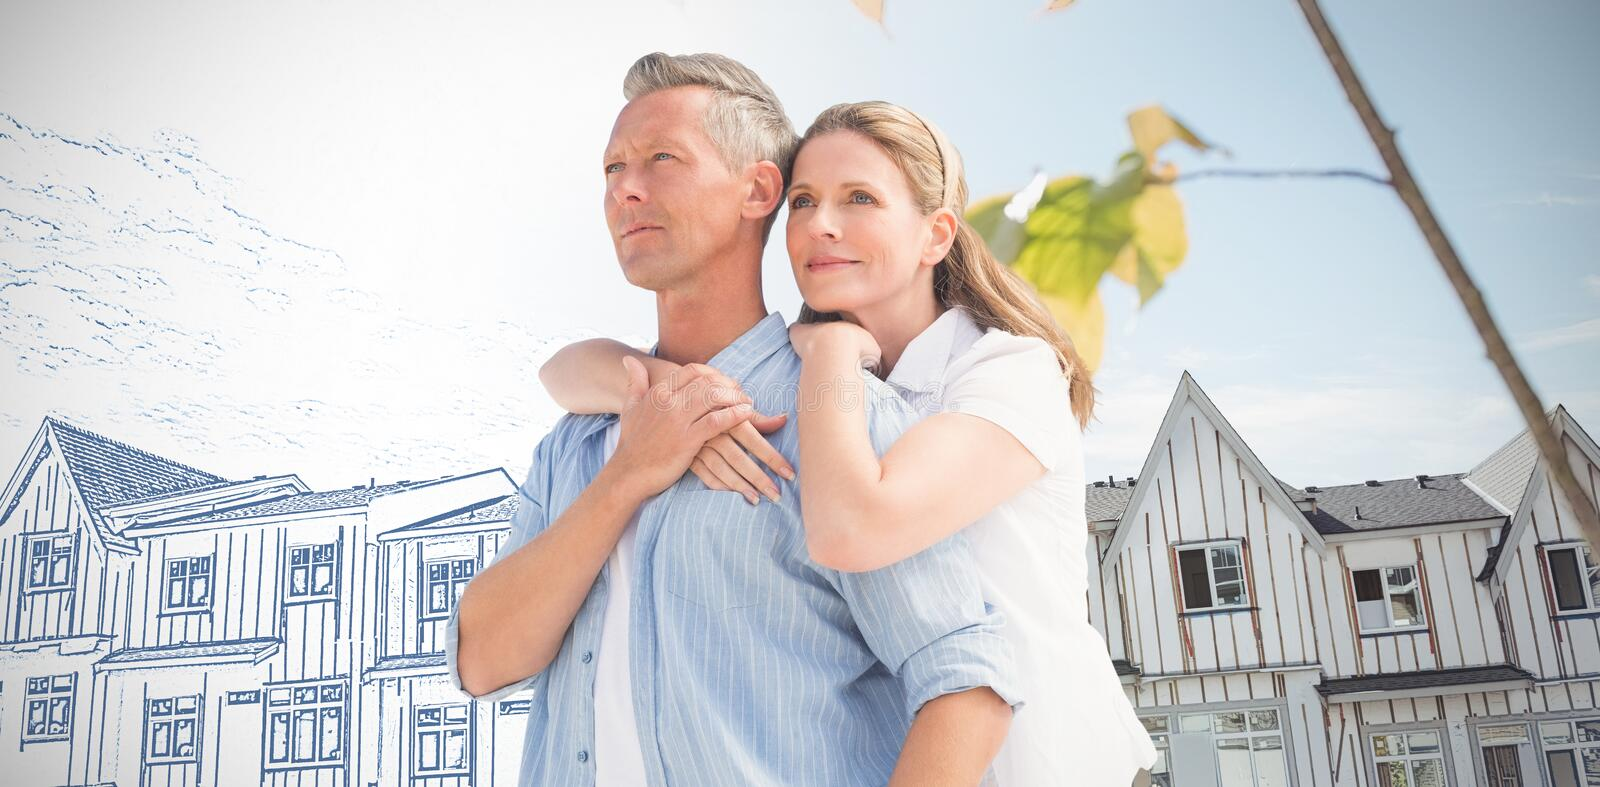 Composite image of mature couple embracing royalty free stock photography